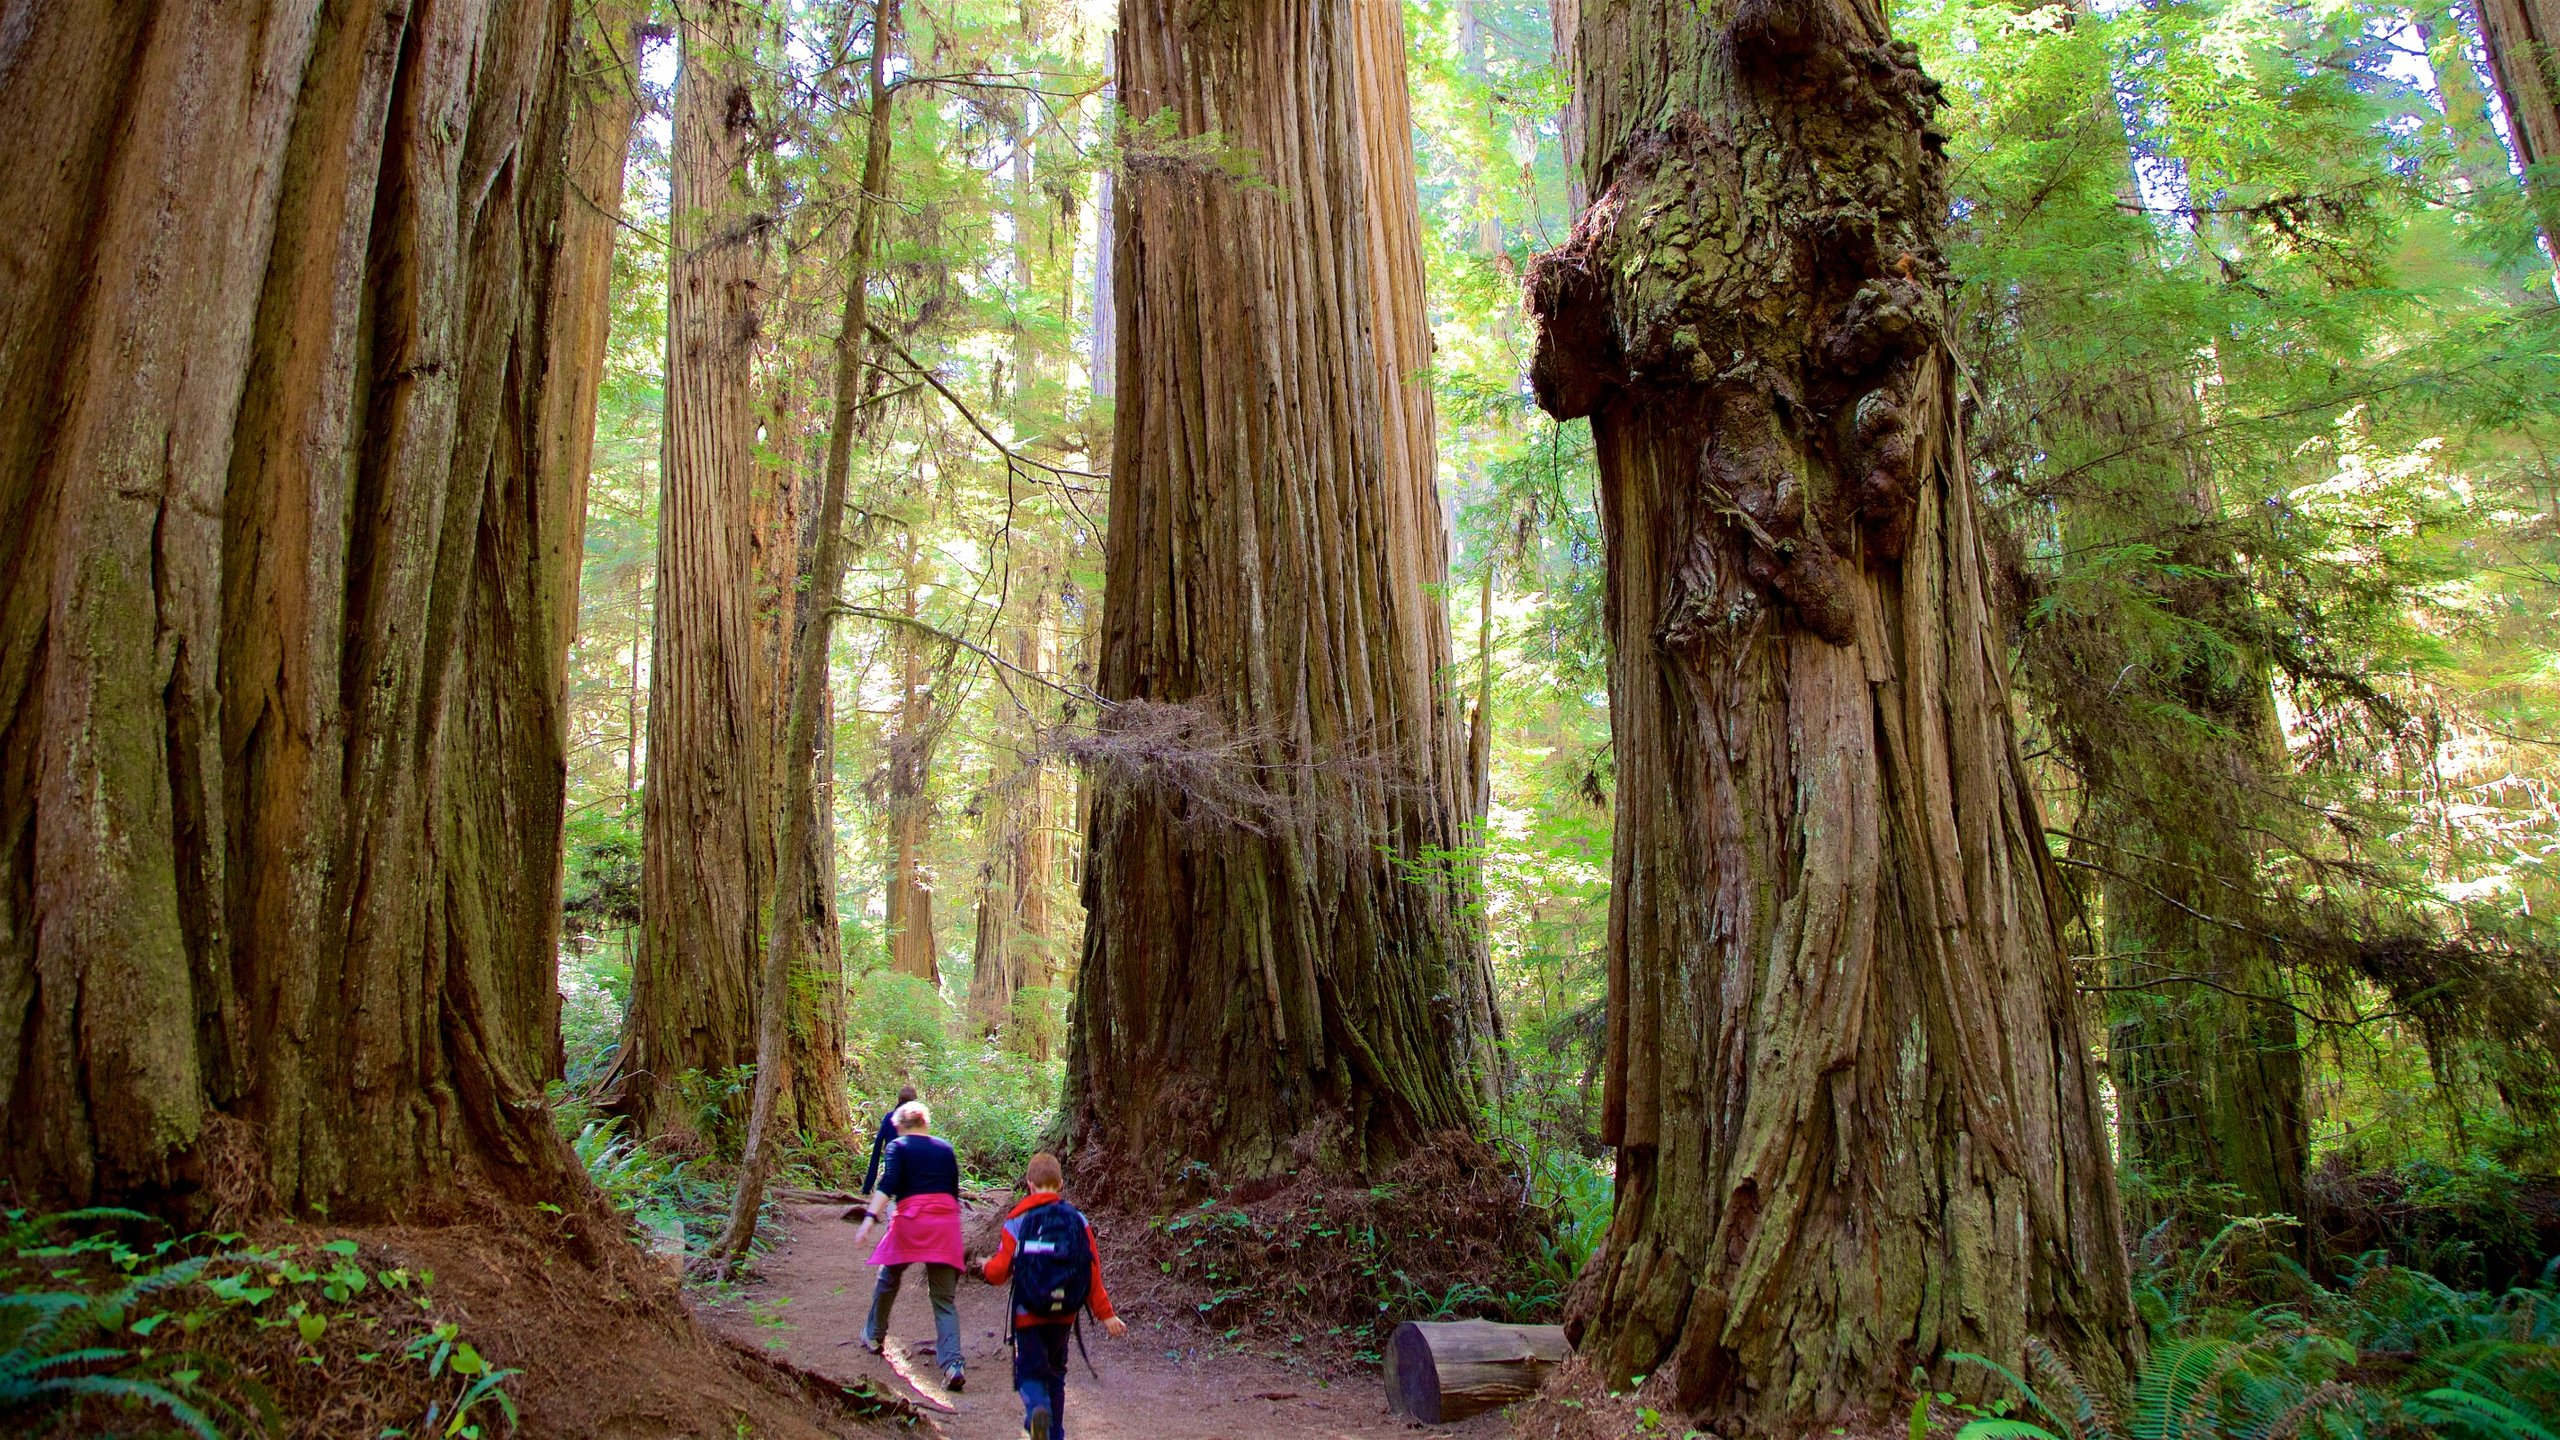 Boy Scout Tree Trail, Crescent City, California, United States of America